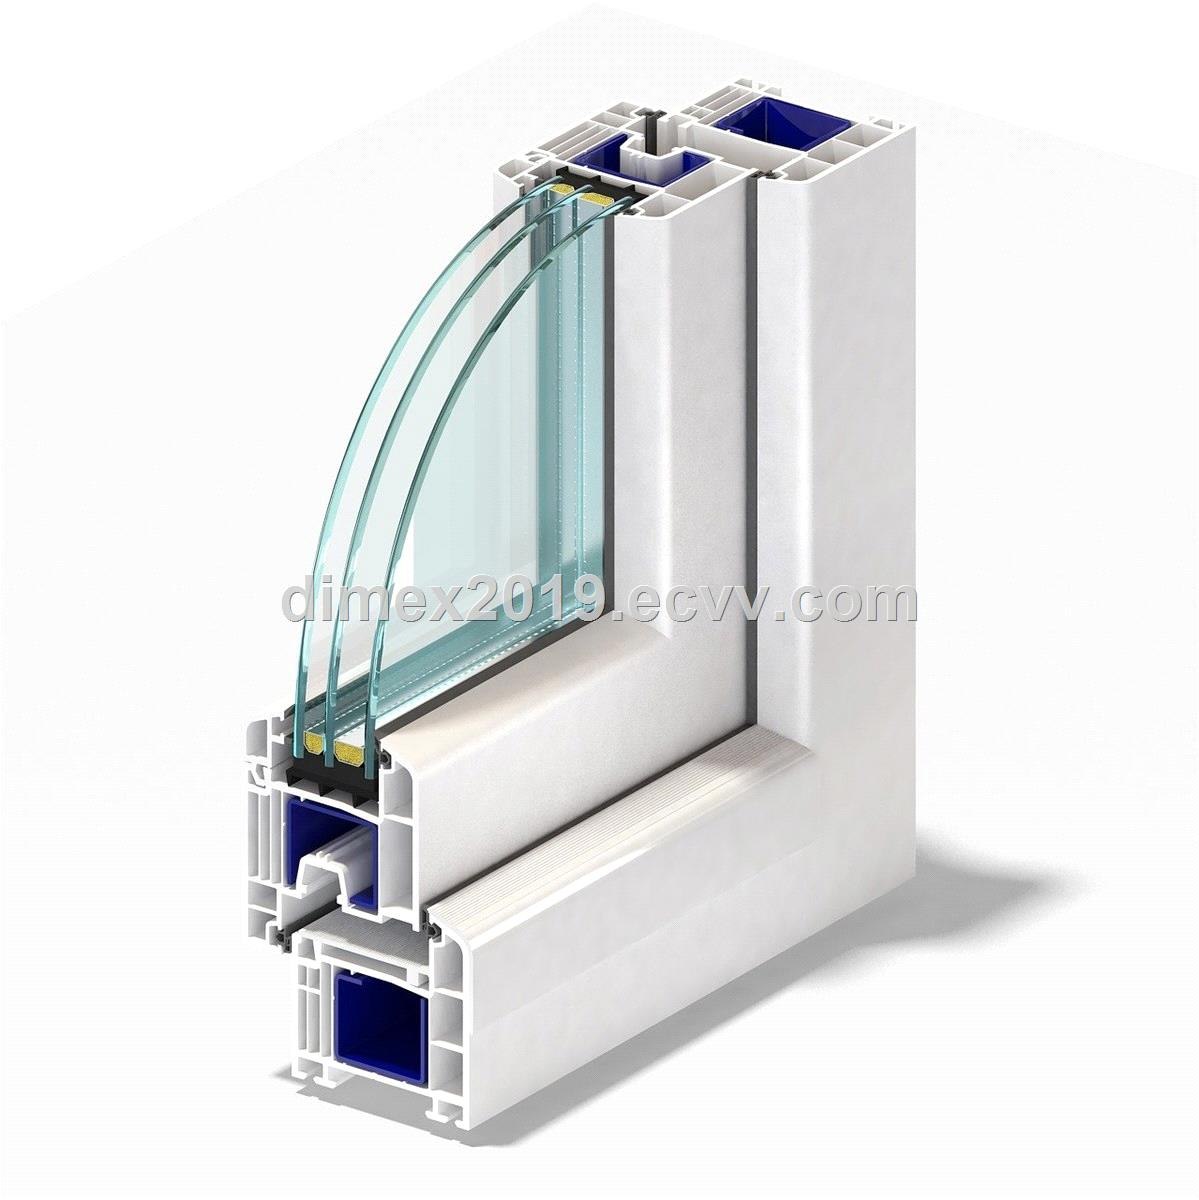 German brand UPVC Window profiles